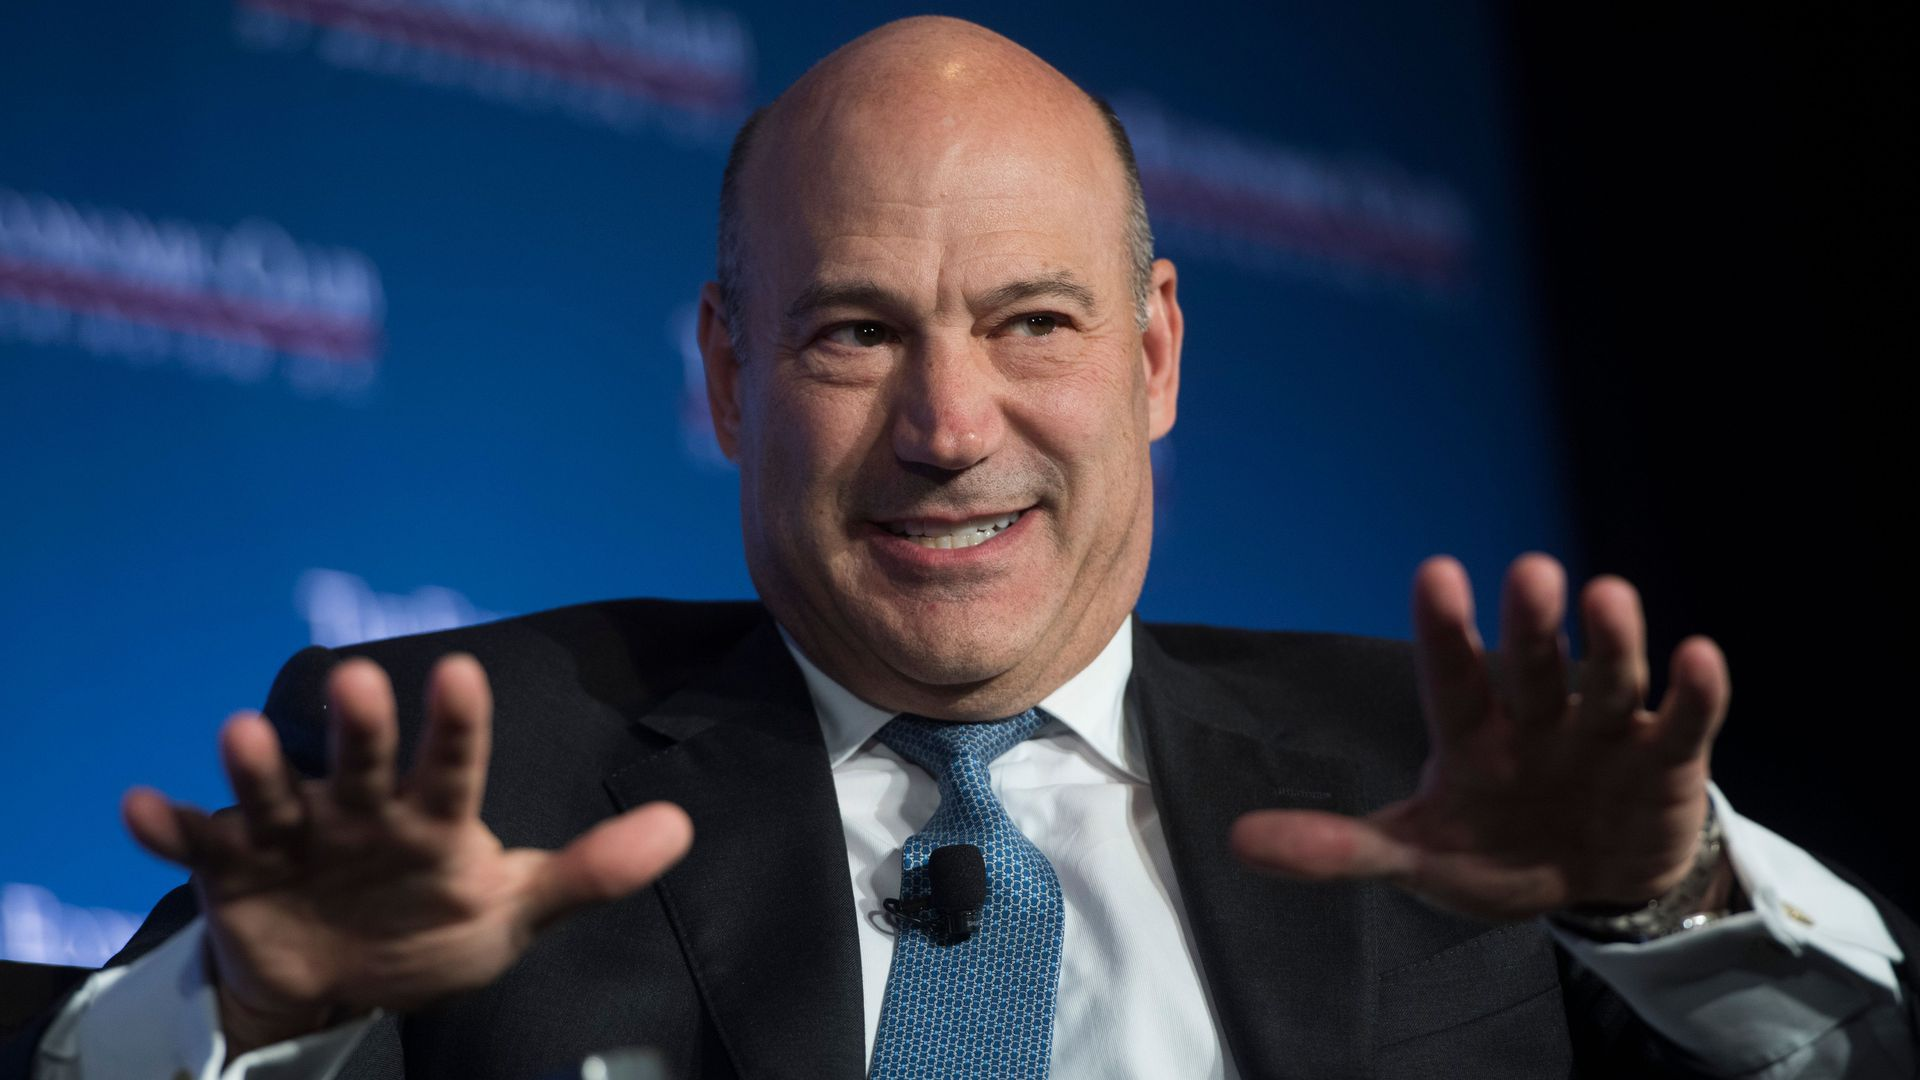 Former Director of the National Economic Council Gary Cohn speaking.